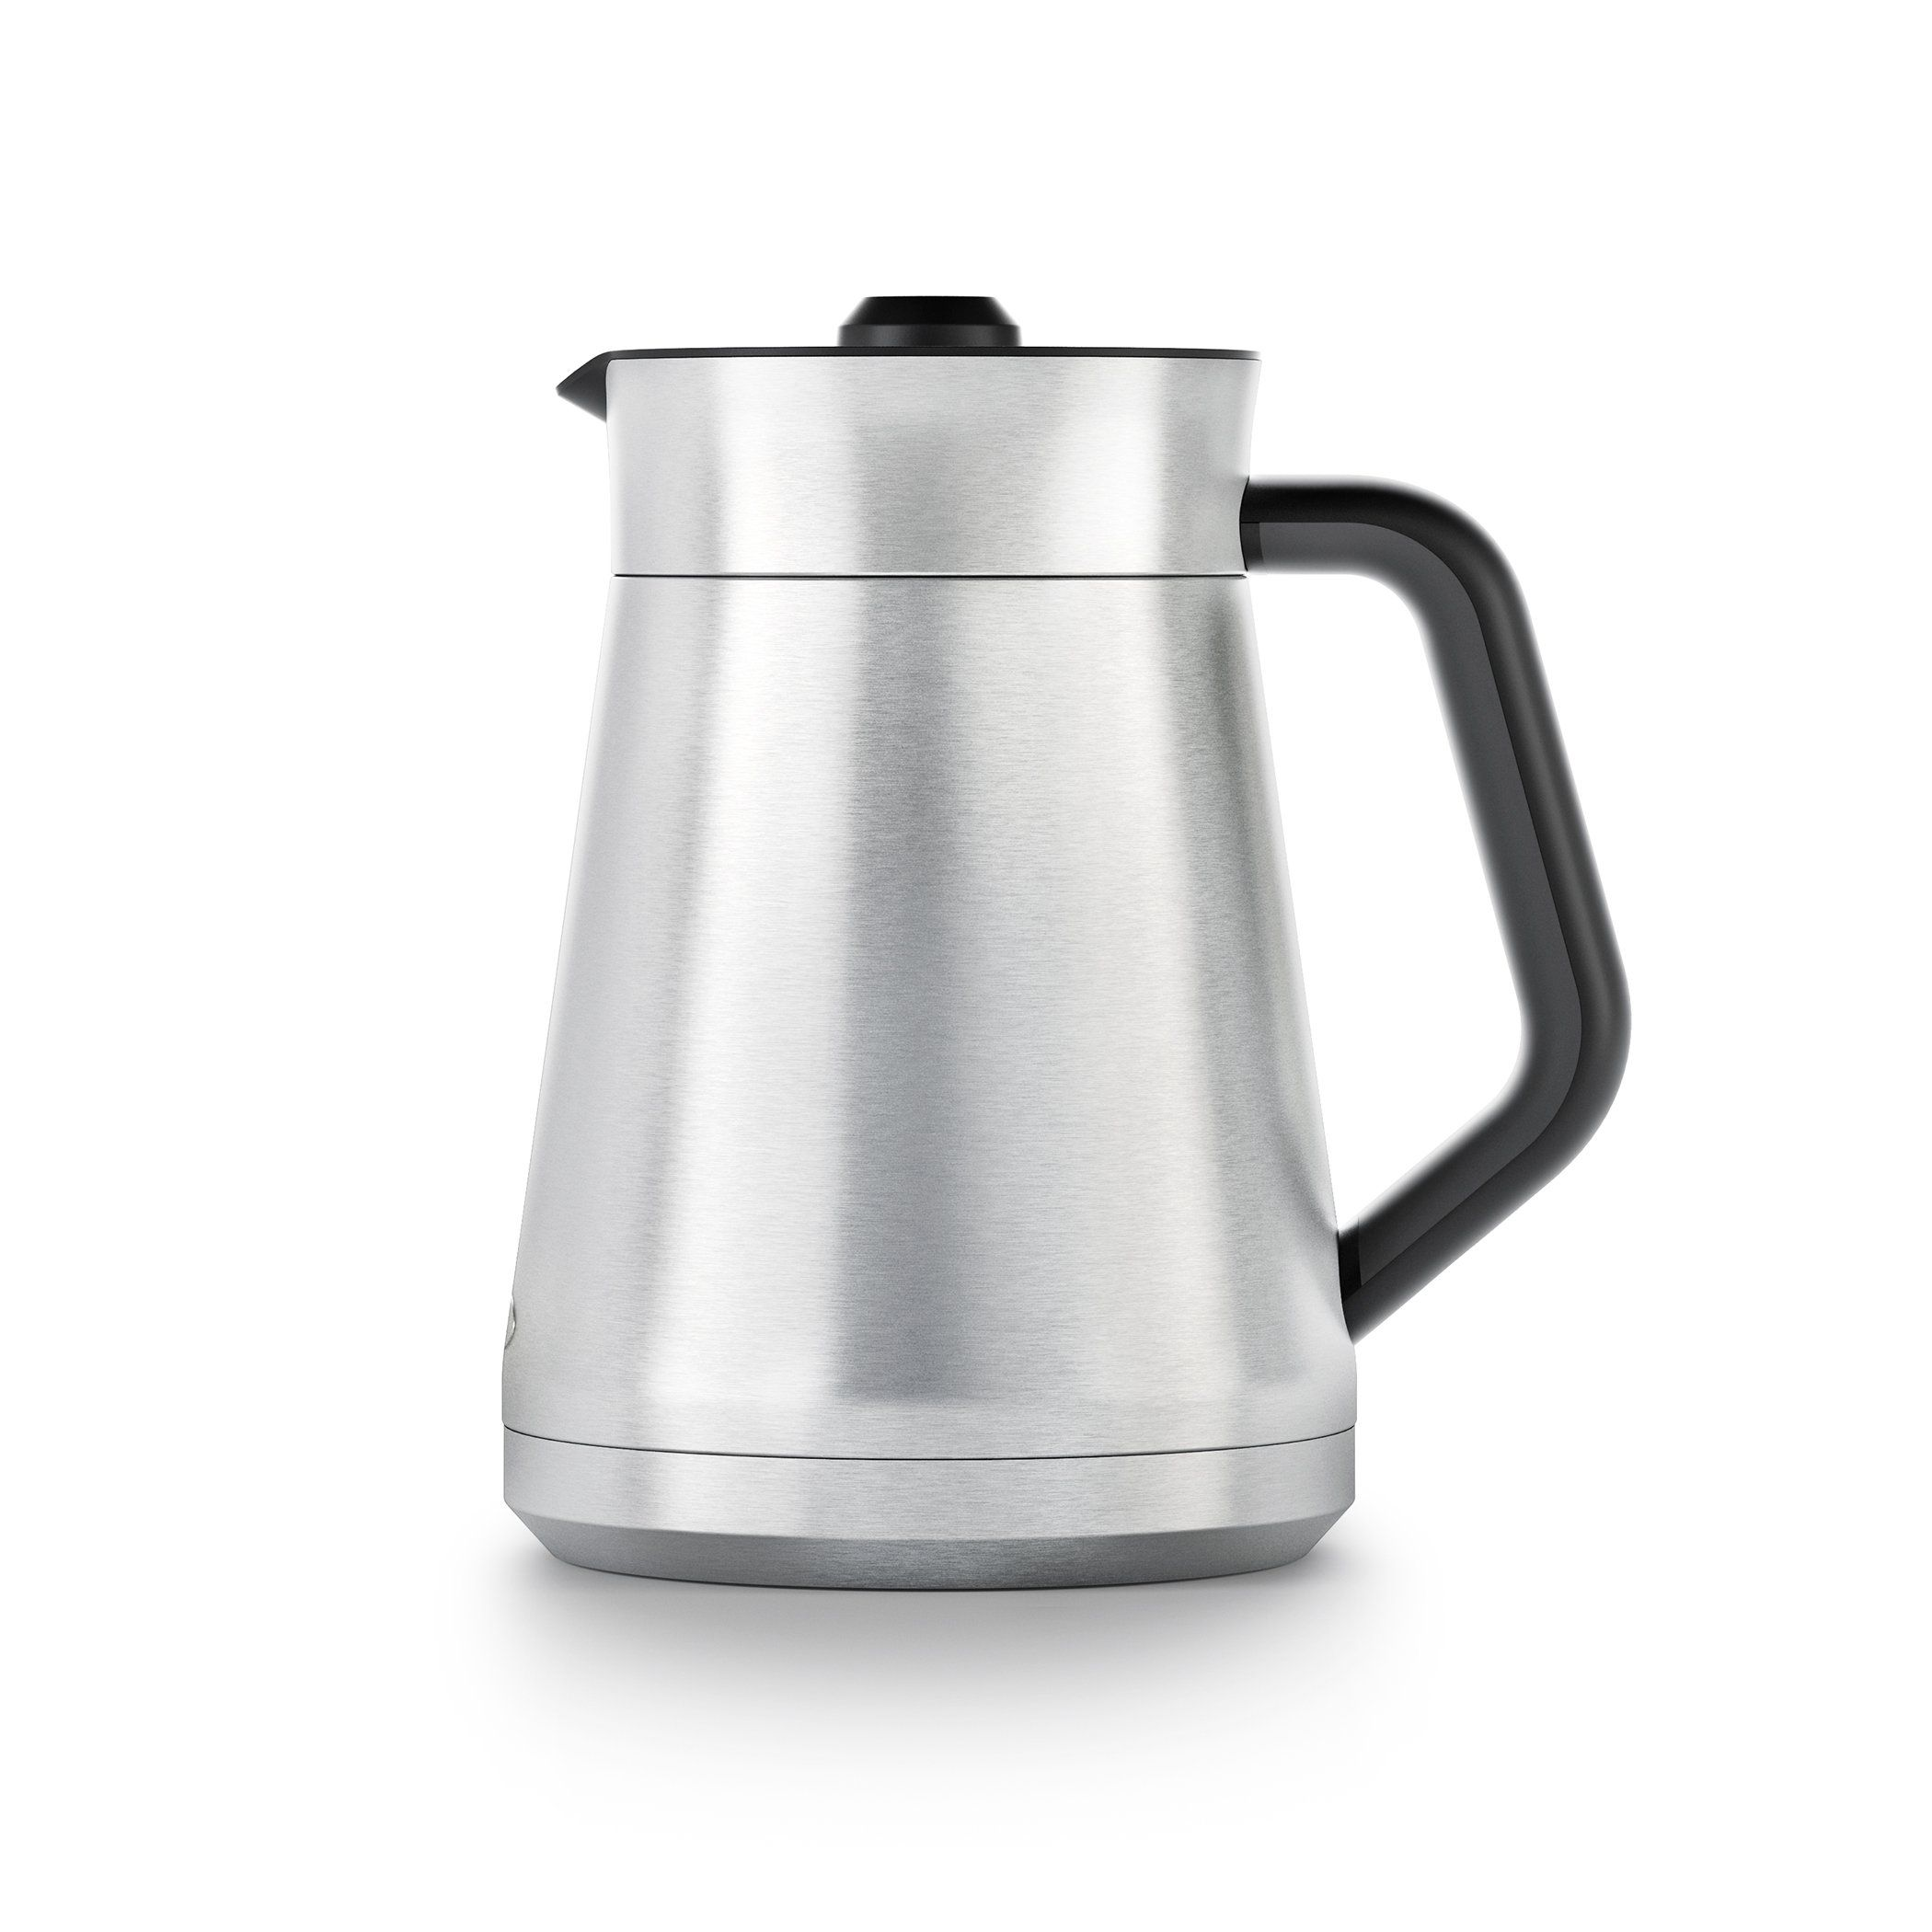 OXO 8715600 On 9 Cup Coffee Maker and Brewing System